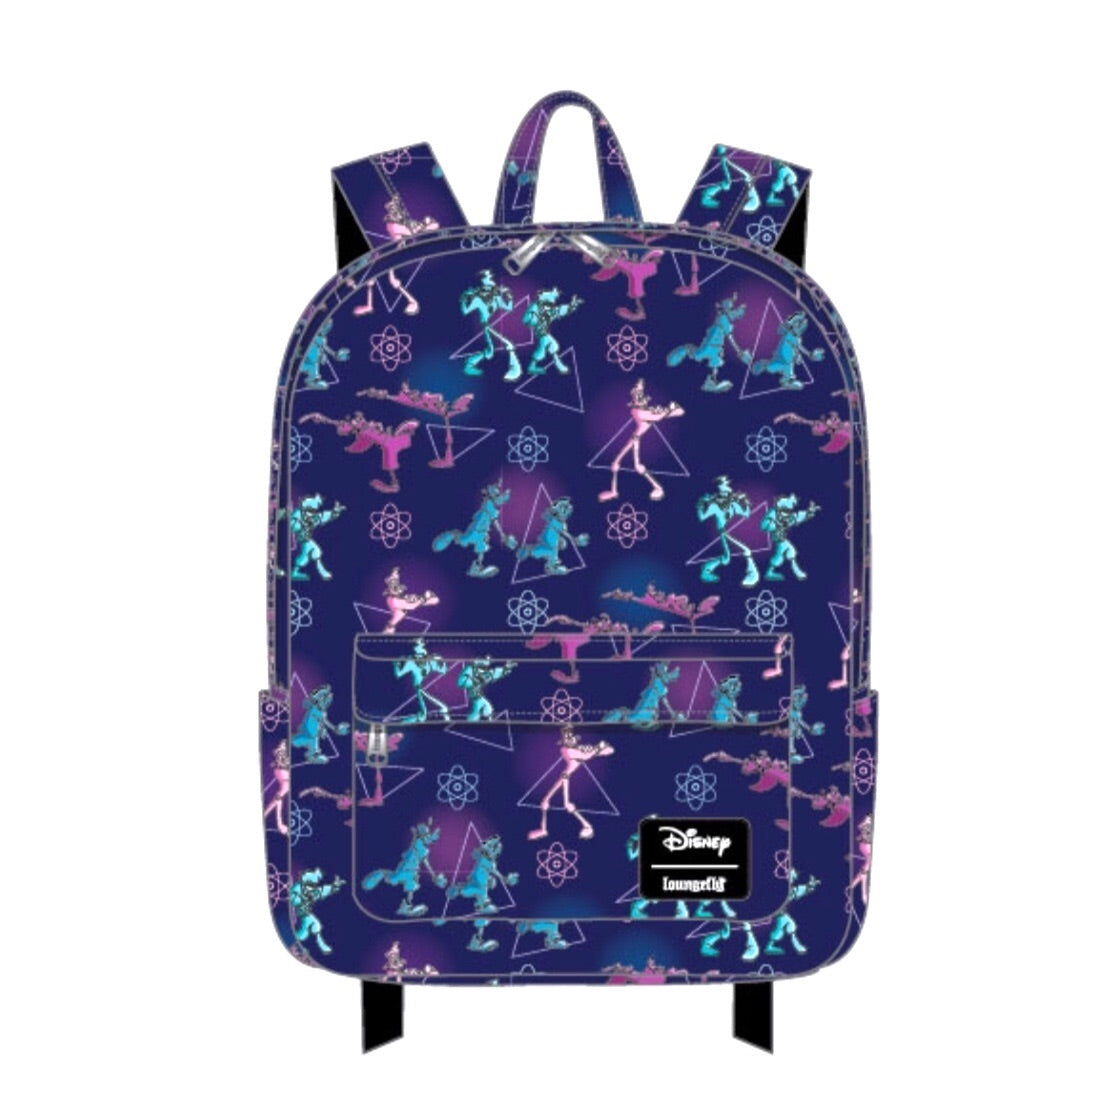 Loungefly X Goofy Movie Backpack